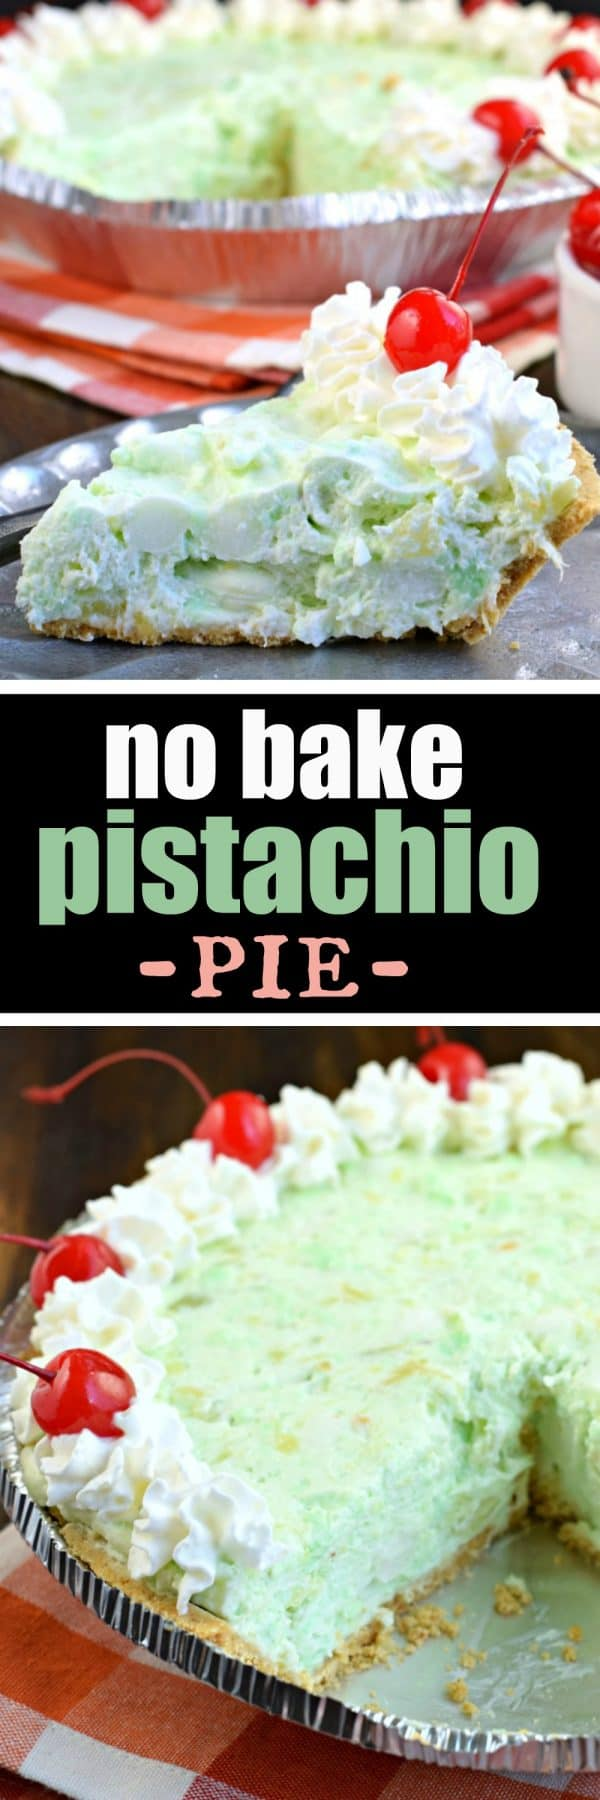 Deliciously easy No Bake Pistachio Pie recipe is filled with cream cheese, pineapple, and marshmallows in a graham cracker crust! You'll love this sweet treat at your next potluck or holiday party. #nobake #pistachio #pudding #dessertrecipes